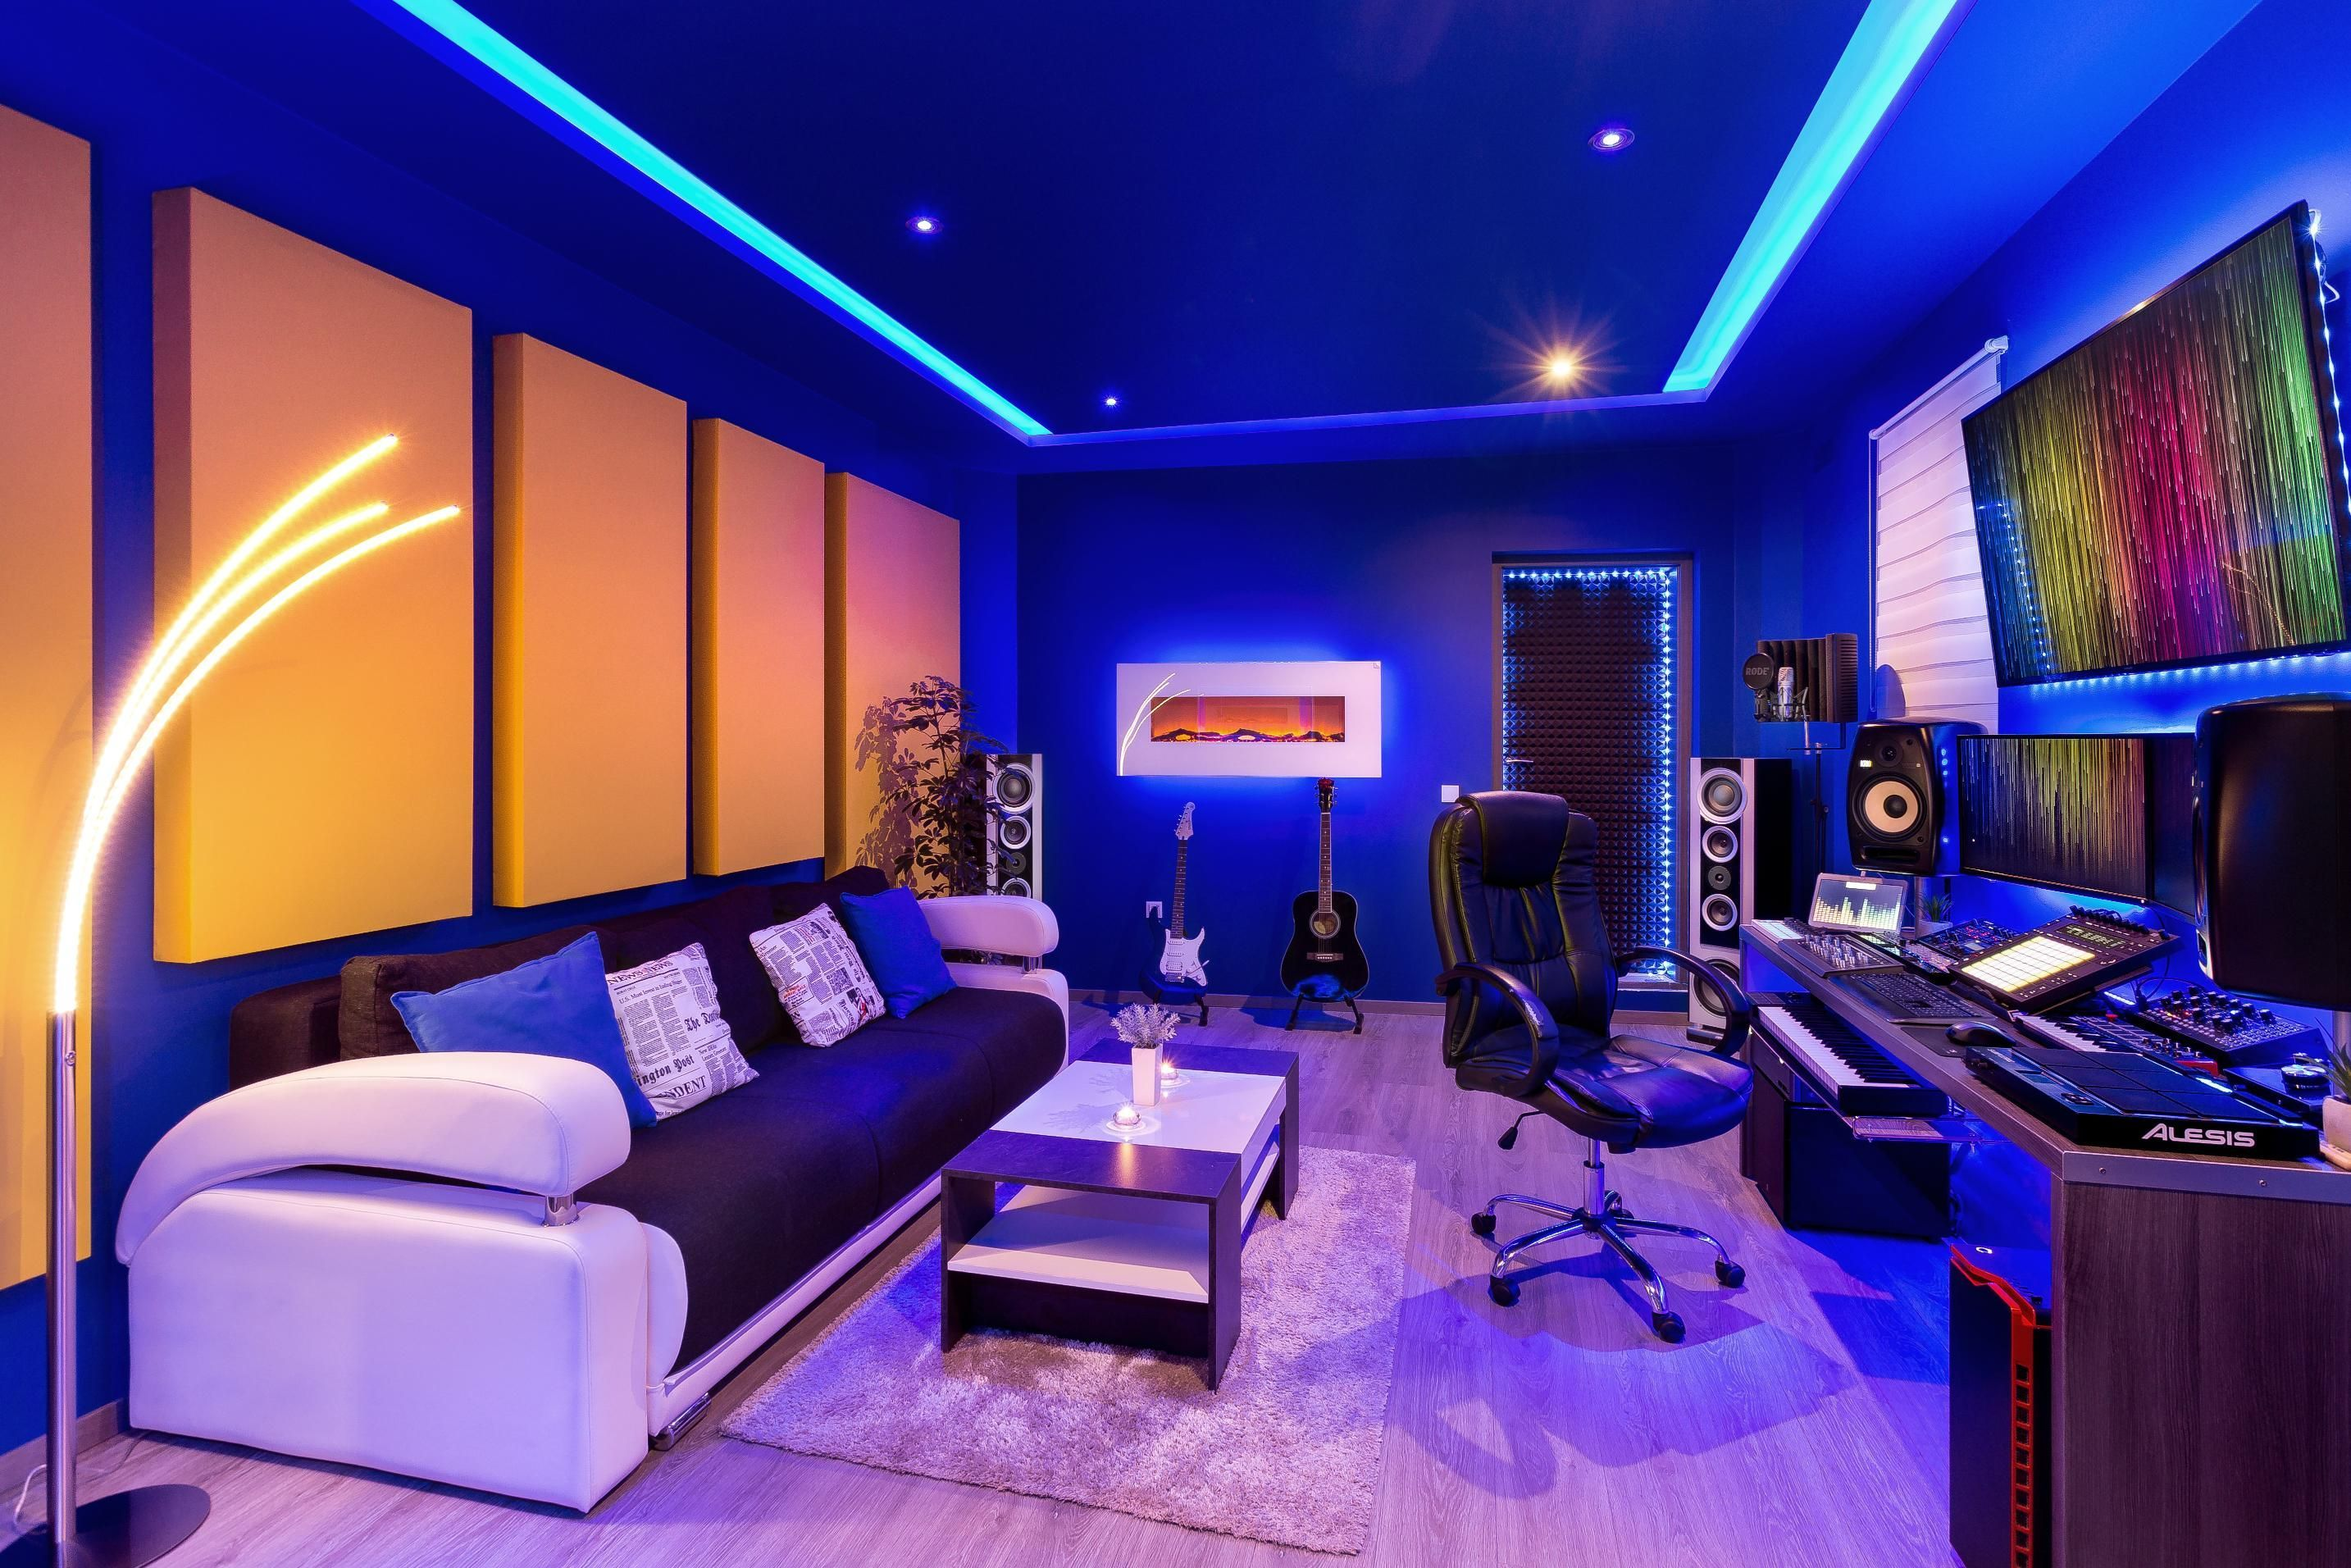 5 Most Recommended Video Game Room Ideas Video Game Rooms Video